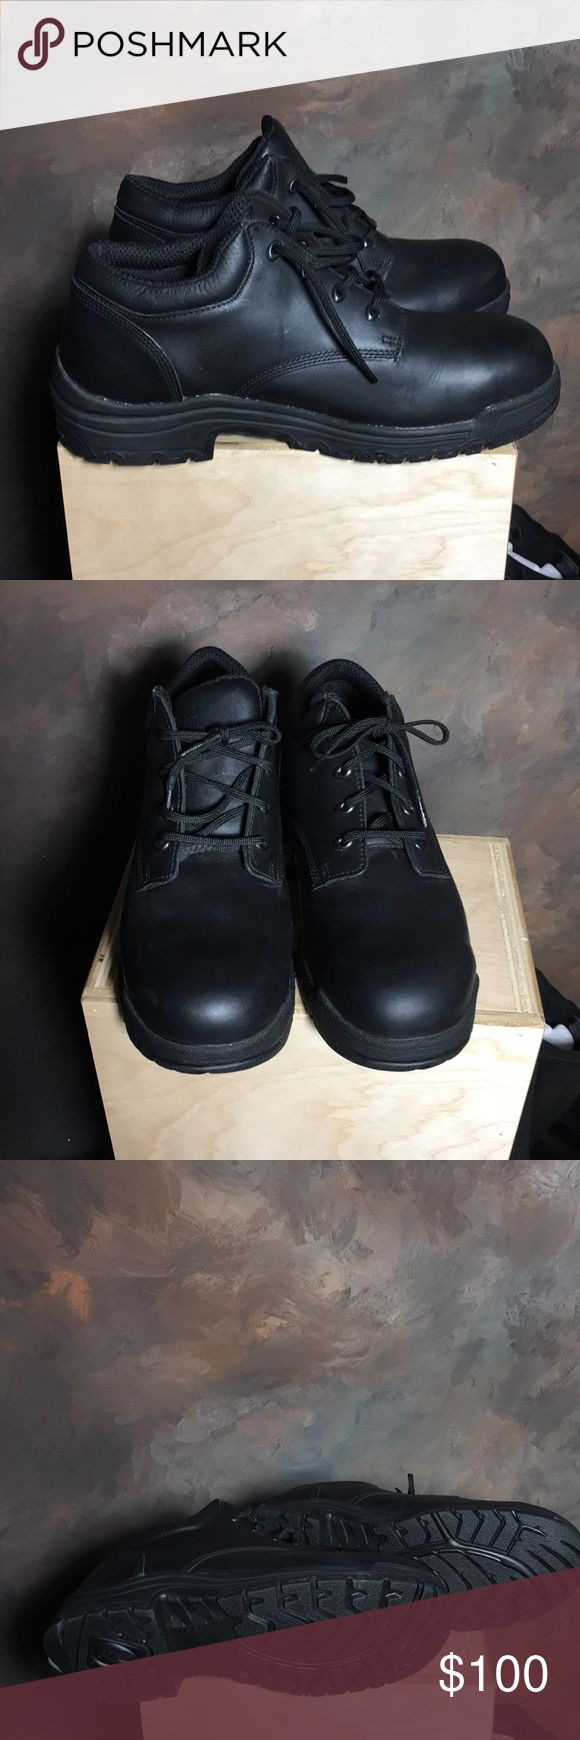 New Work Timberland ProTitan Safety Toe Shoes New Work Shoes.  Timberland Pro Titan Safety Toe Shoes.  Black leather.  Engineered to meet or excel ASTM standards for Safety Toe electrical hazard footwear.  New with stickers still on the insert. timberland pro Shoes